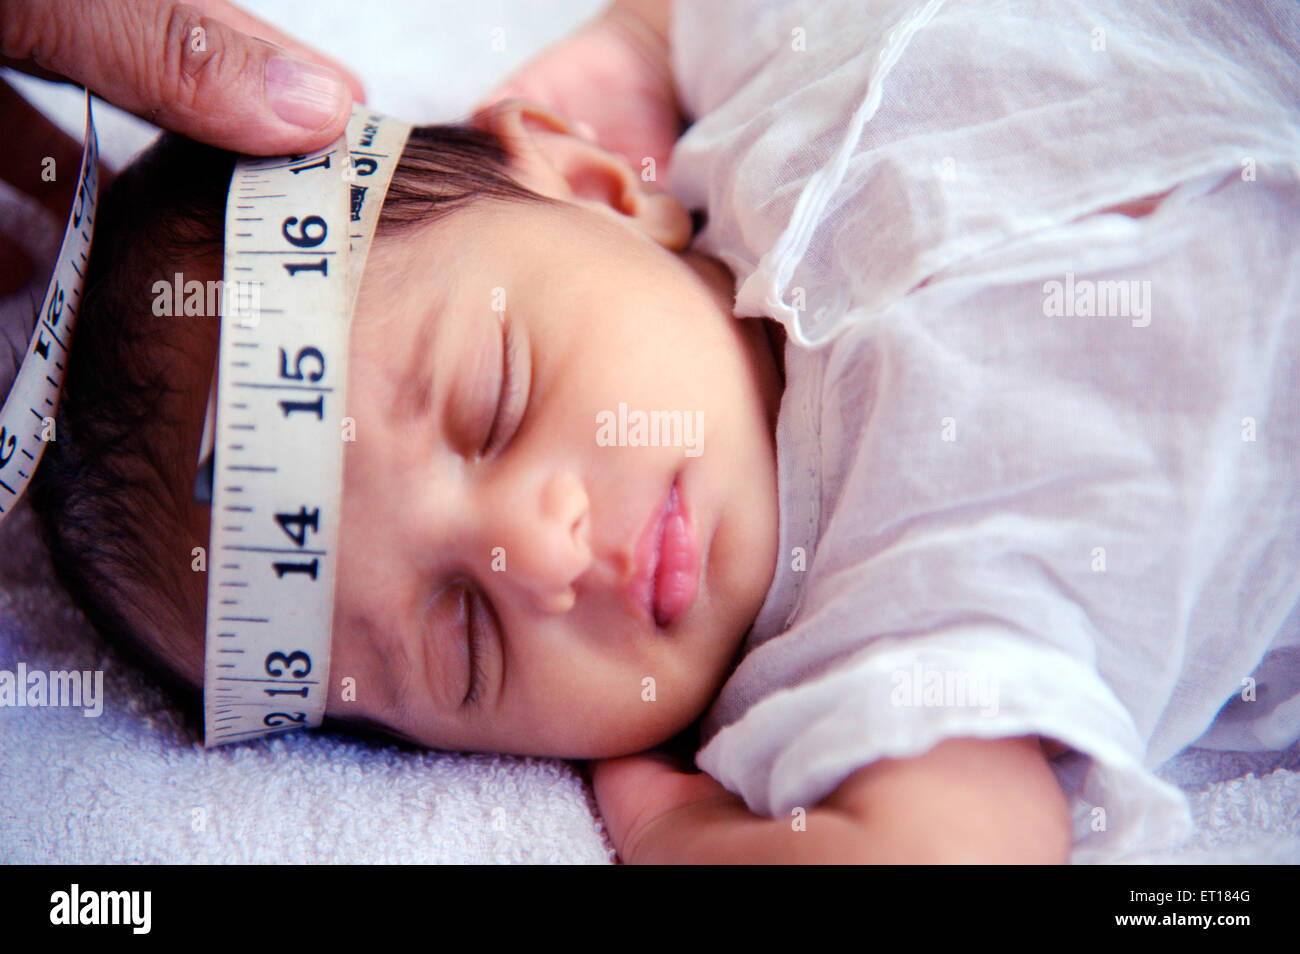 Tête de mesure de l'indian new born baby avec ruban de mesure - M.# 736J - smr 179686 Photo Stock